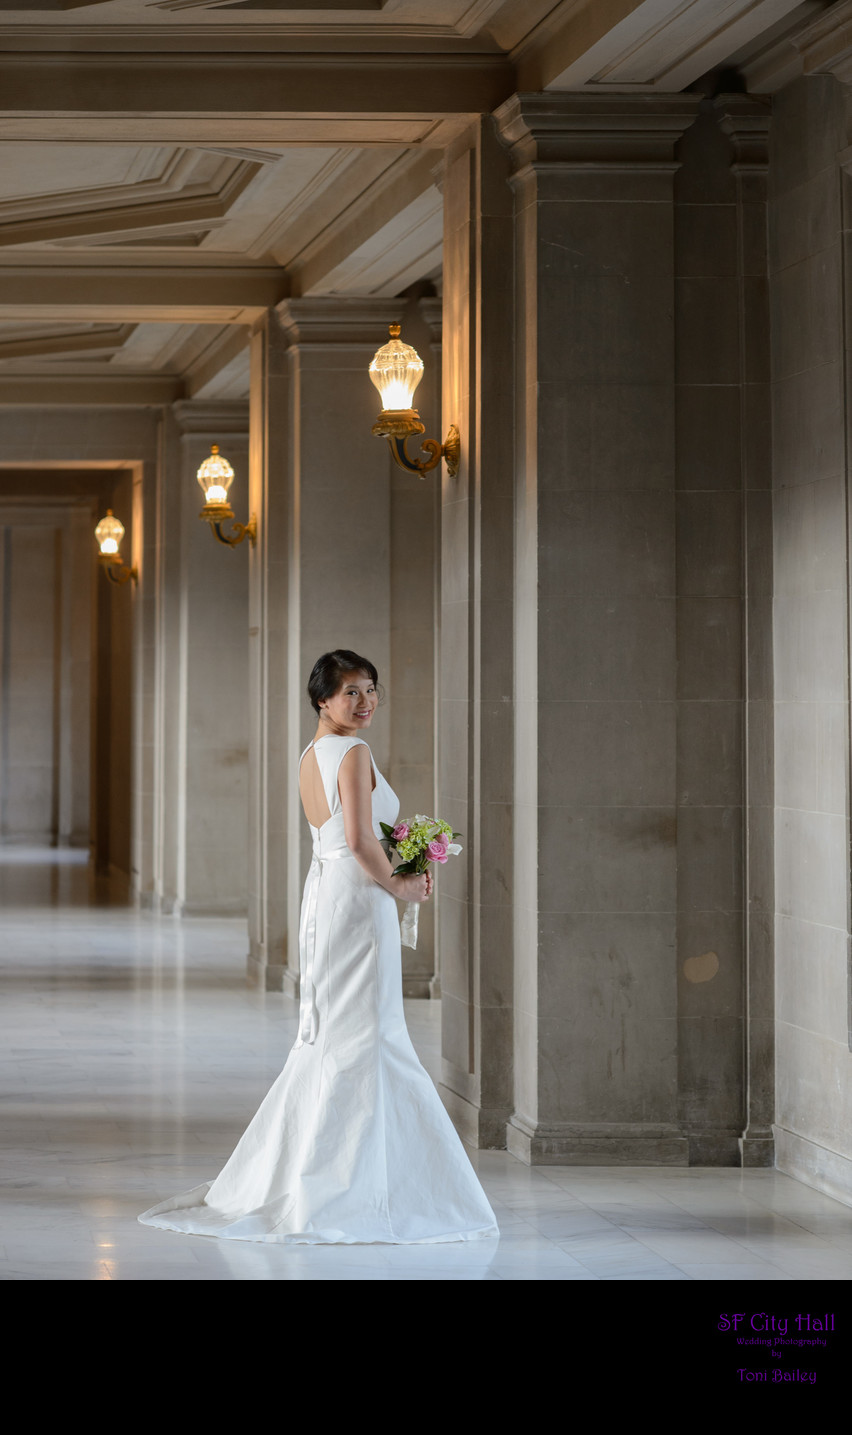 Lovely Bride at City Hall